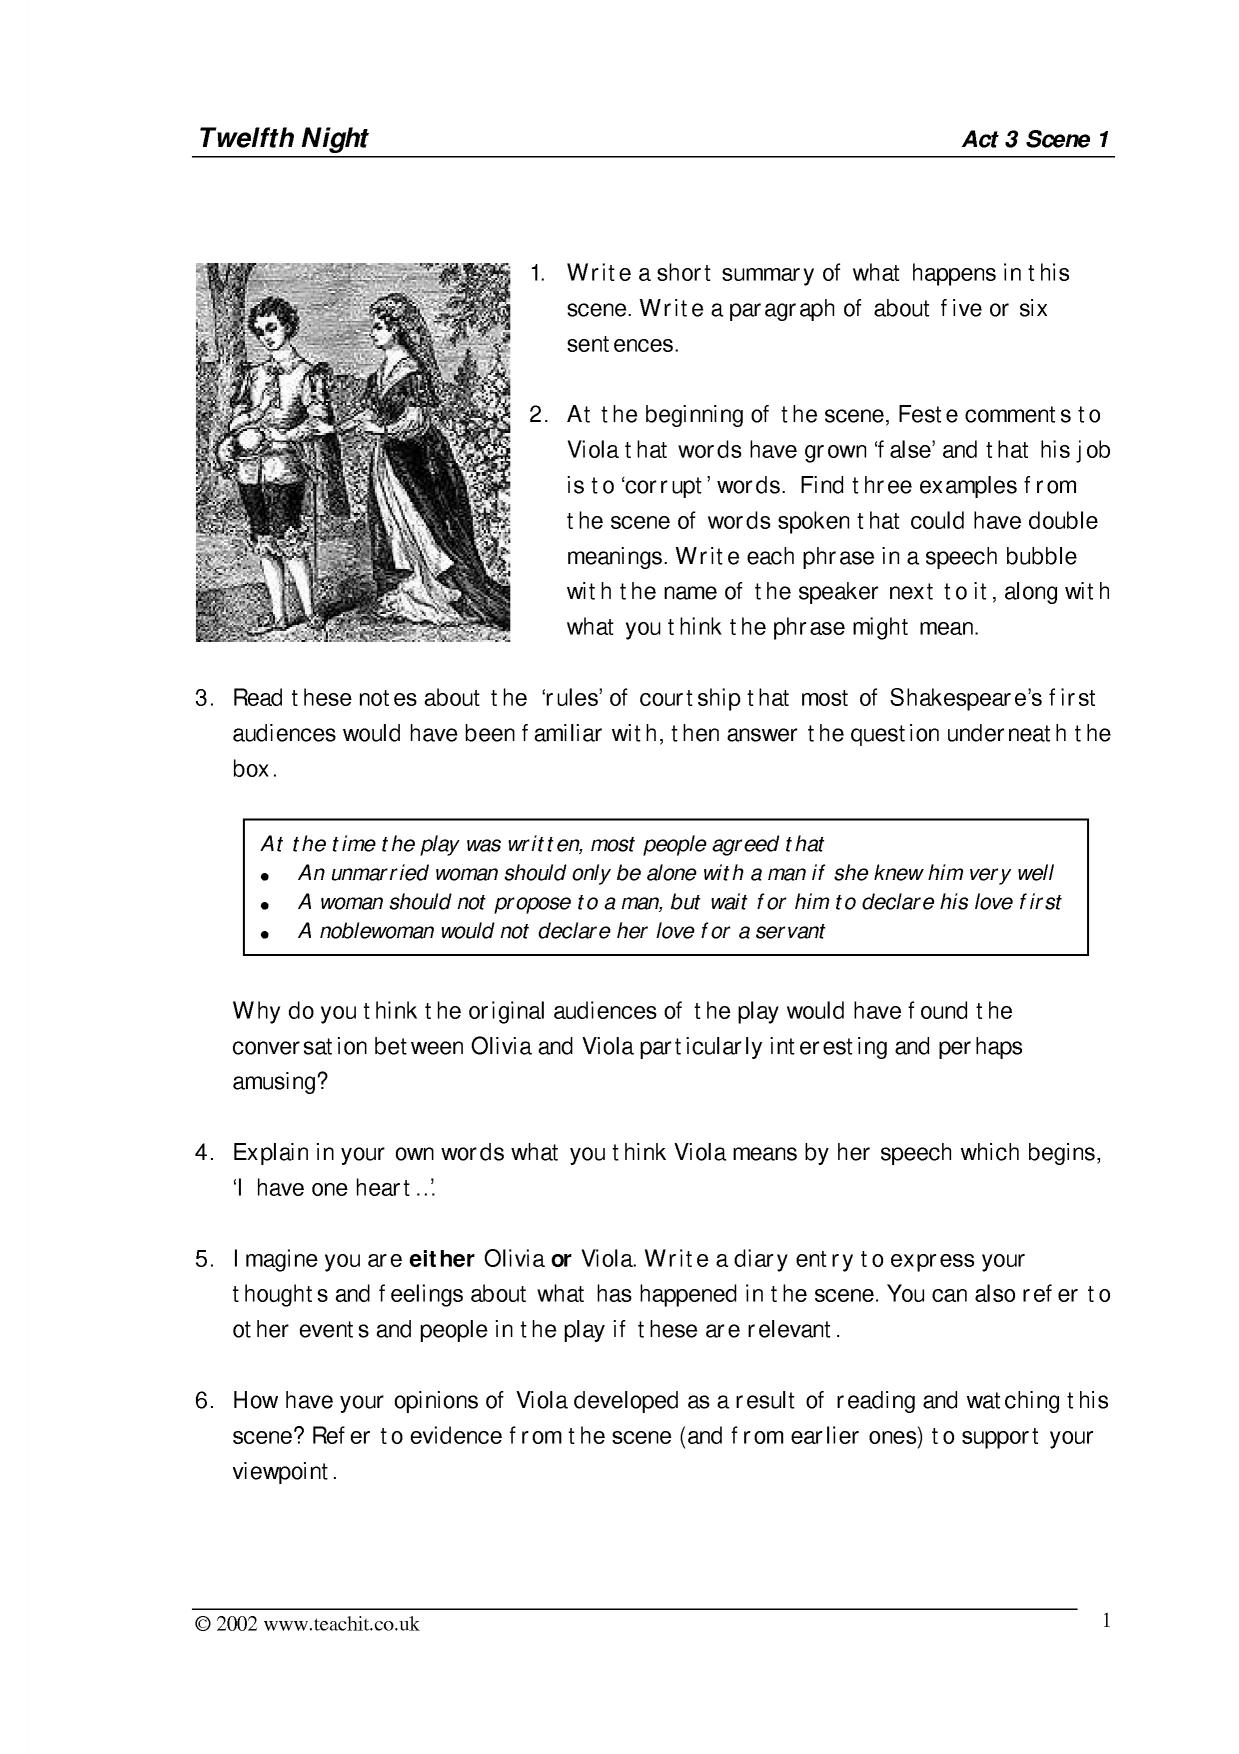 Act 1 Character Identification Worksheet